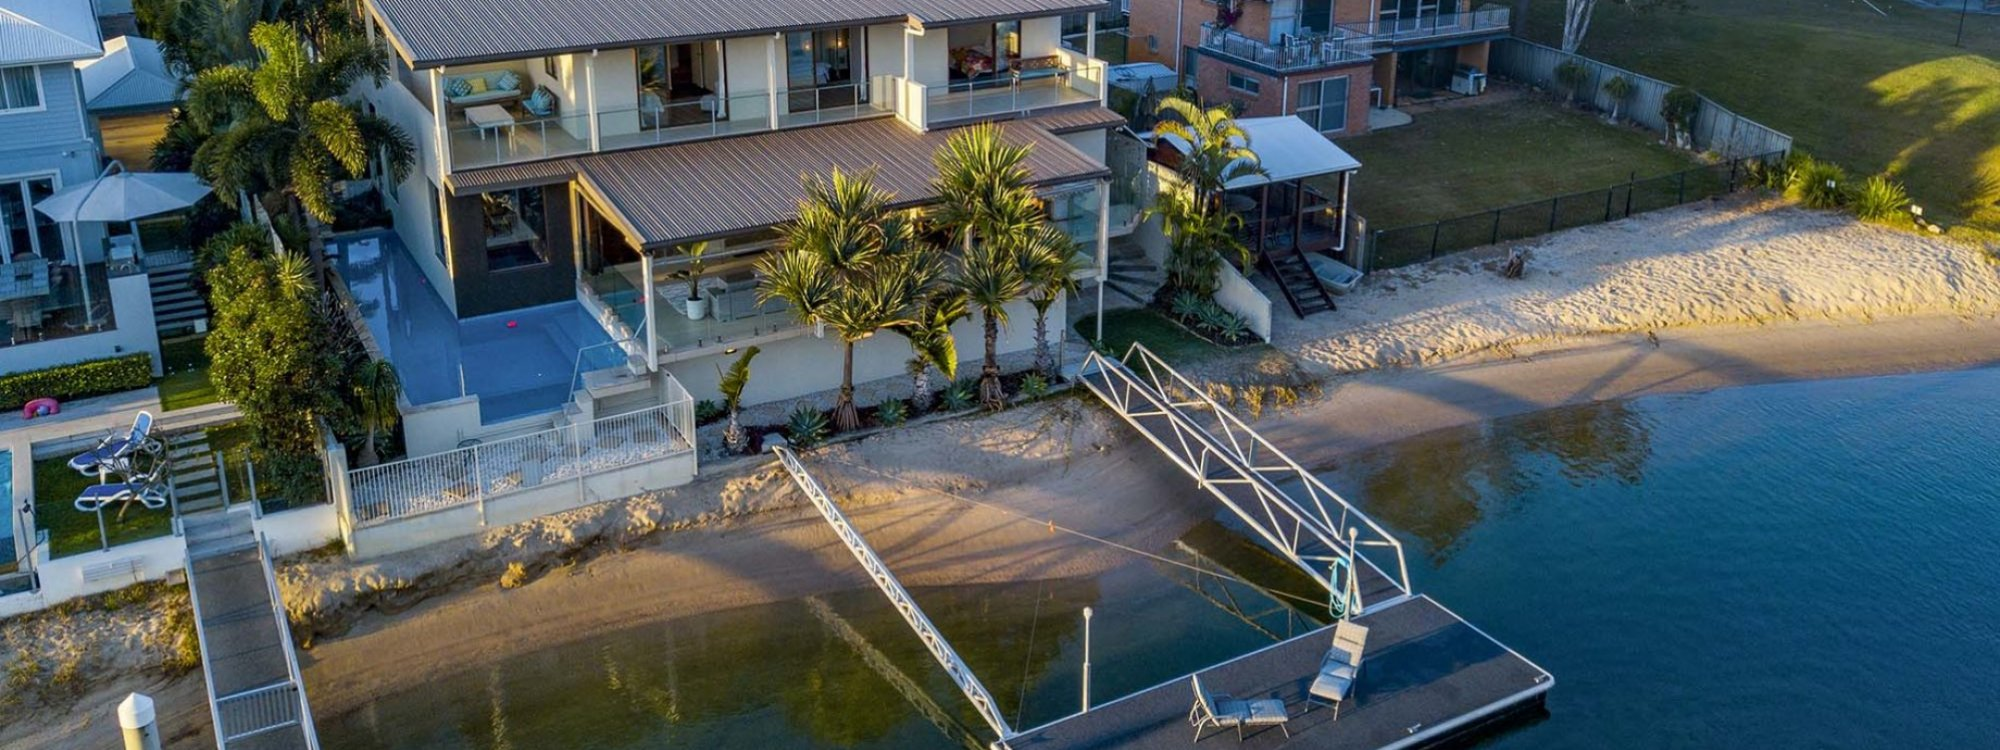 Casa Grande - Broadbeach Waters - Aerial Towards Property